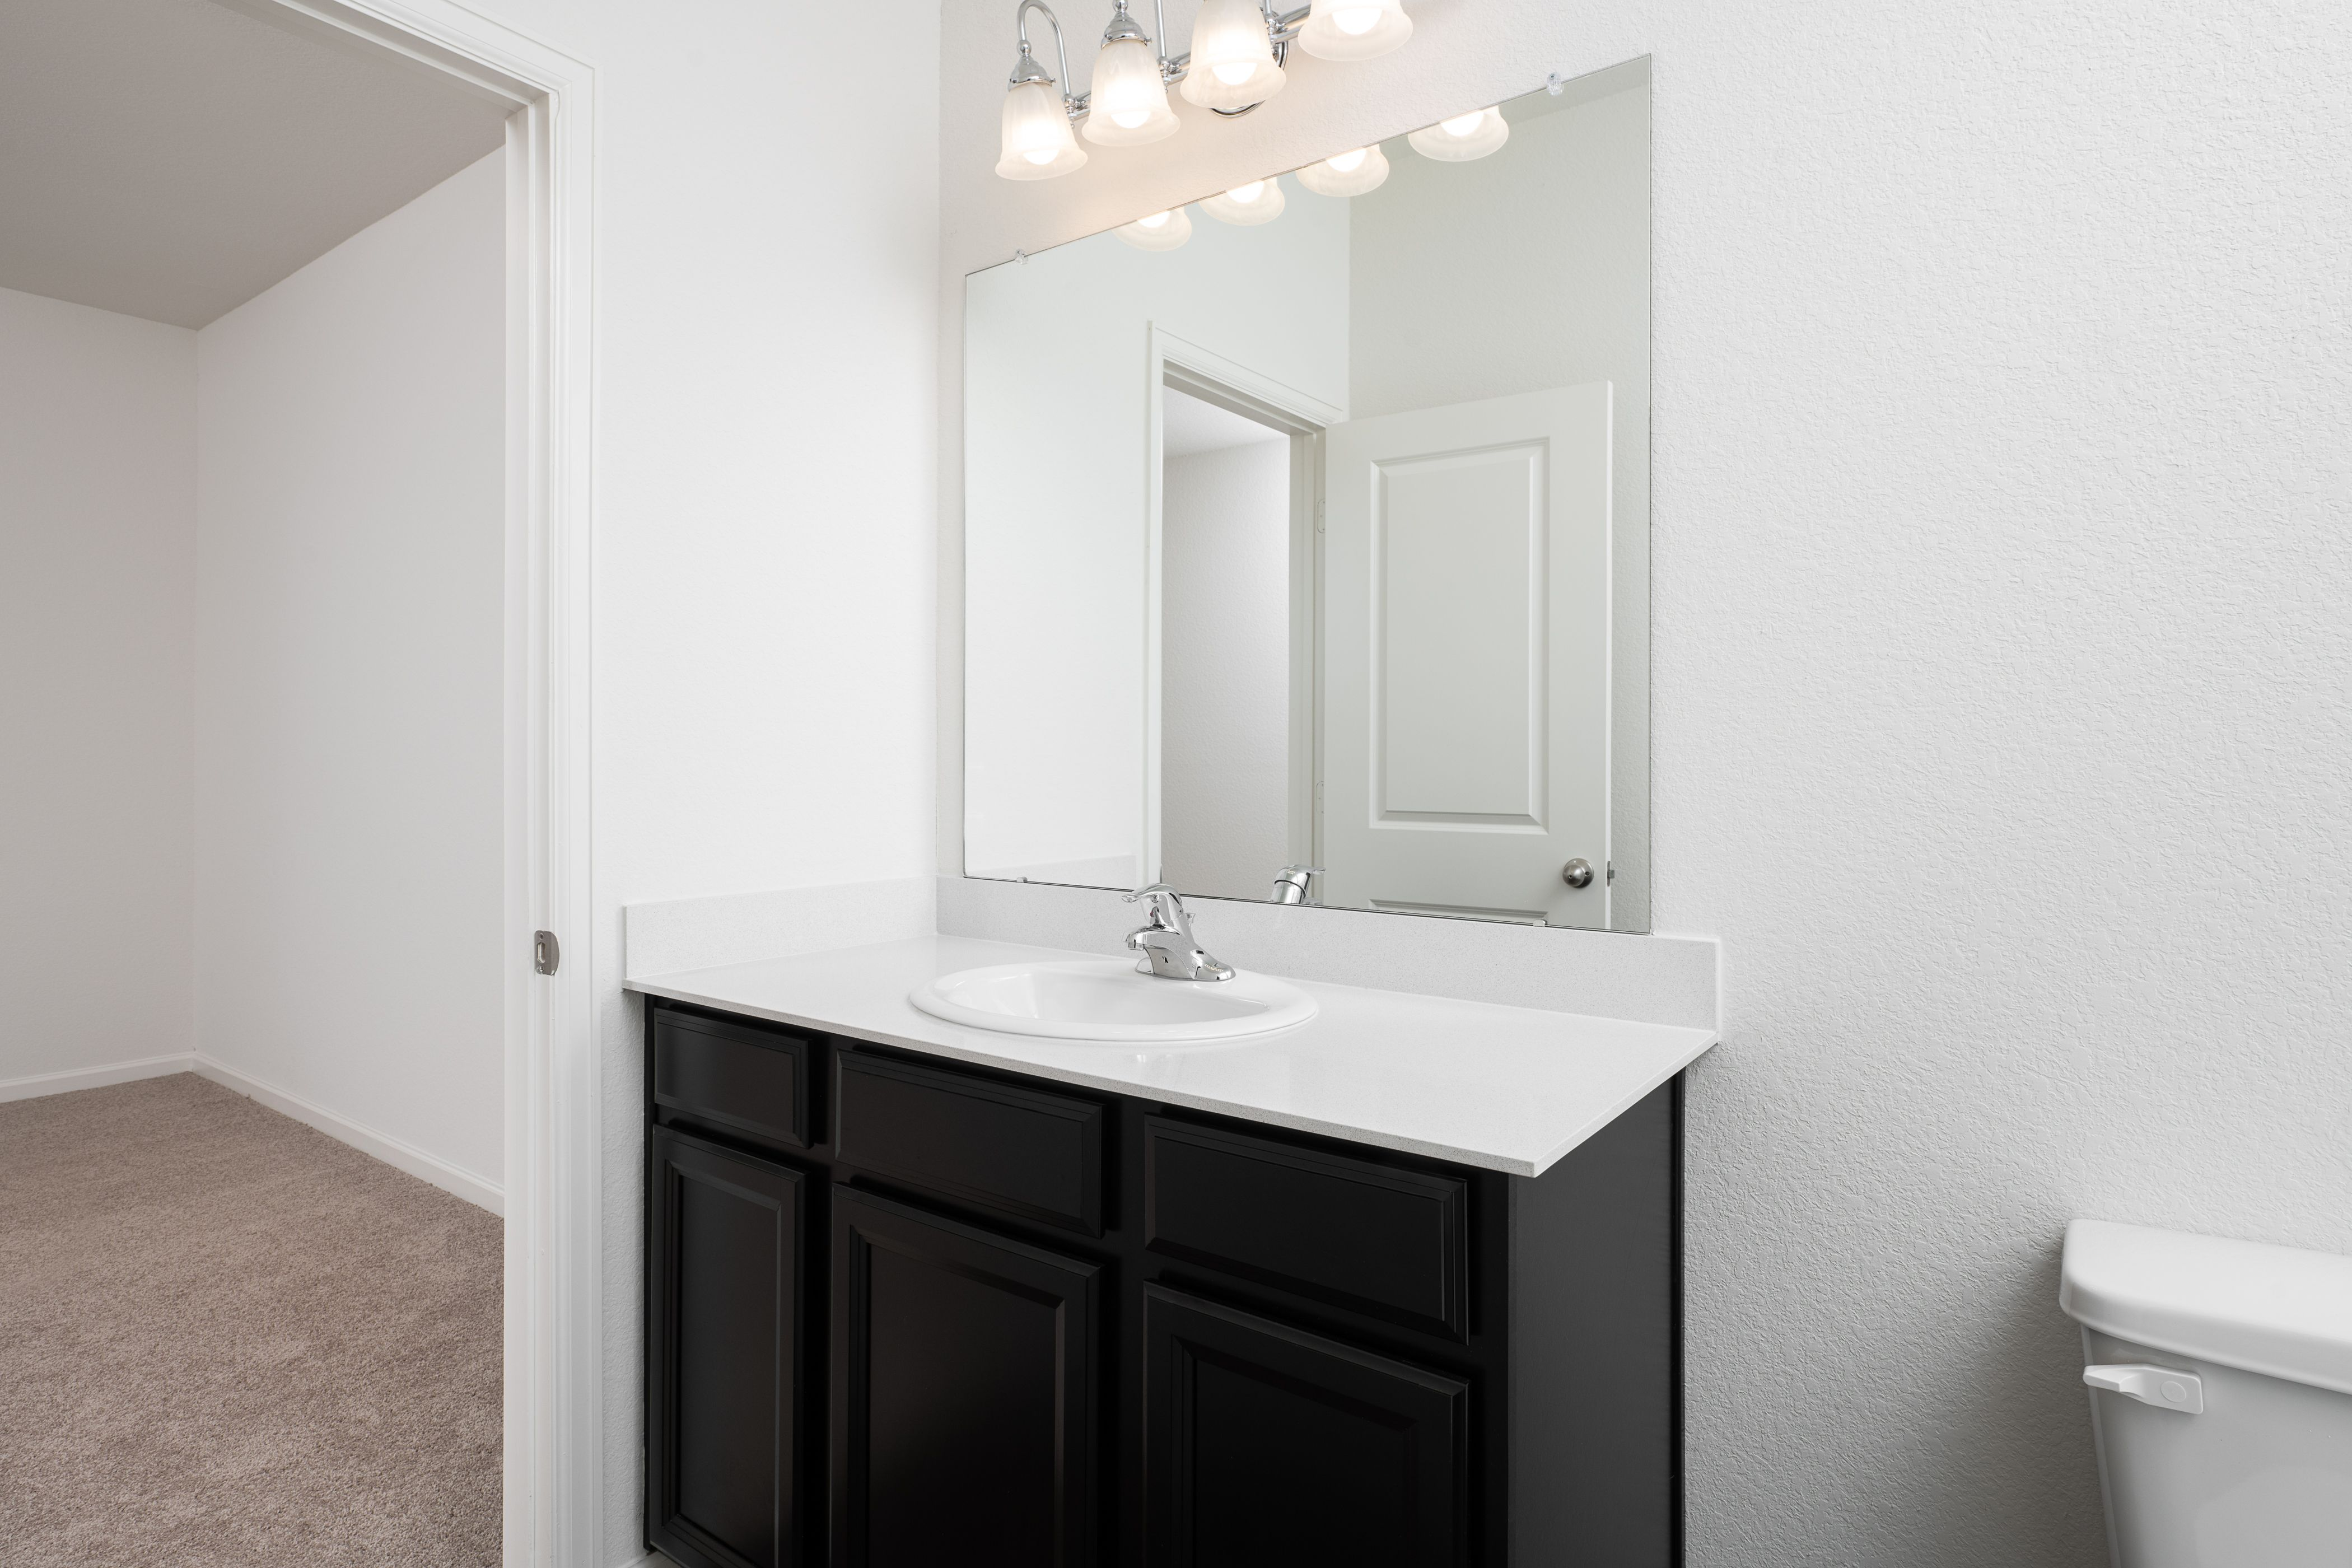 Bathroom featured in the Falcon By Starlight Homes in San Antonio, TX